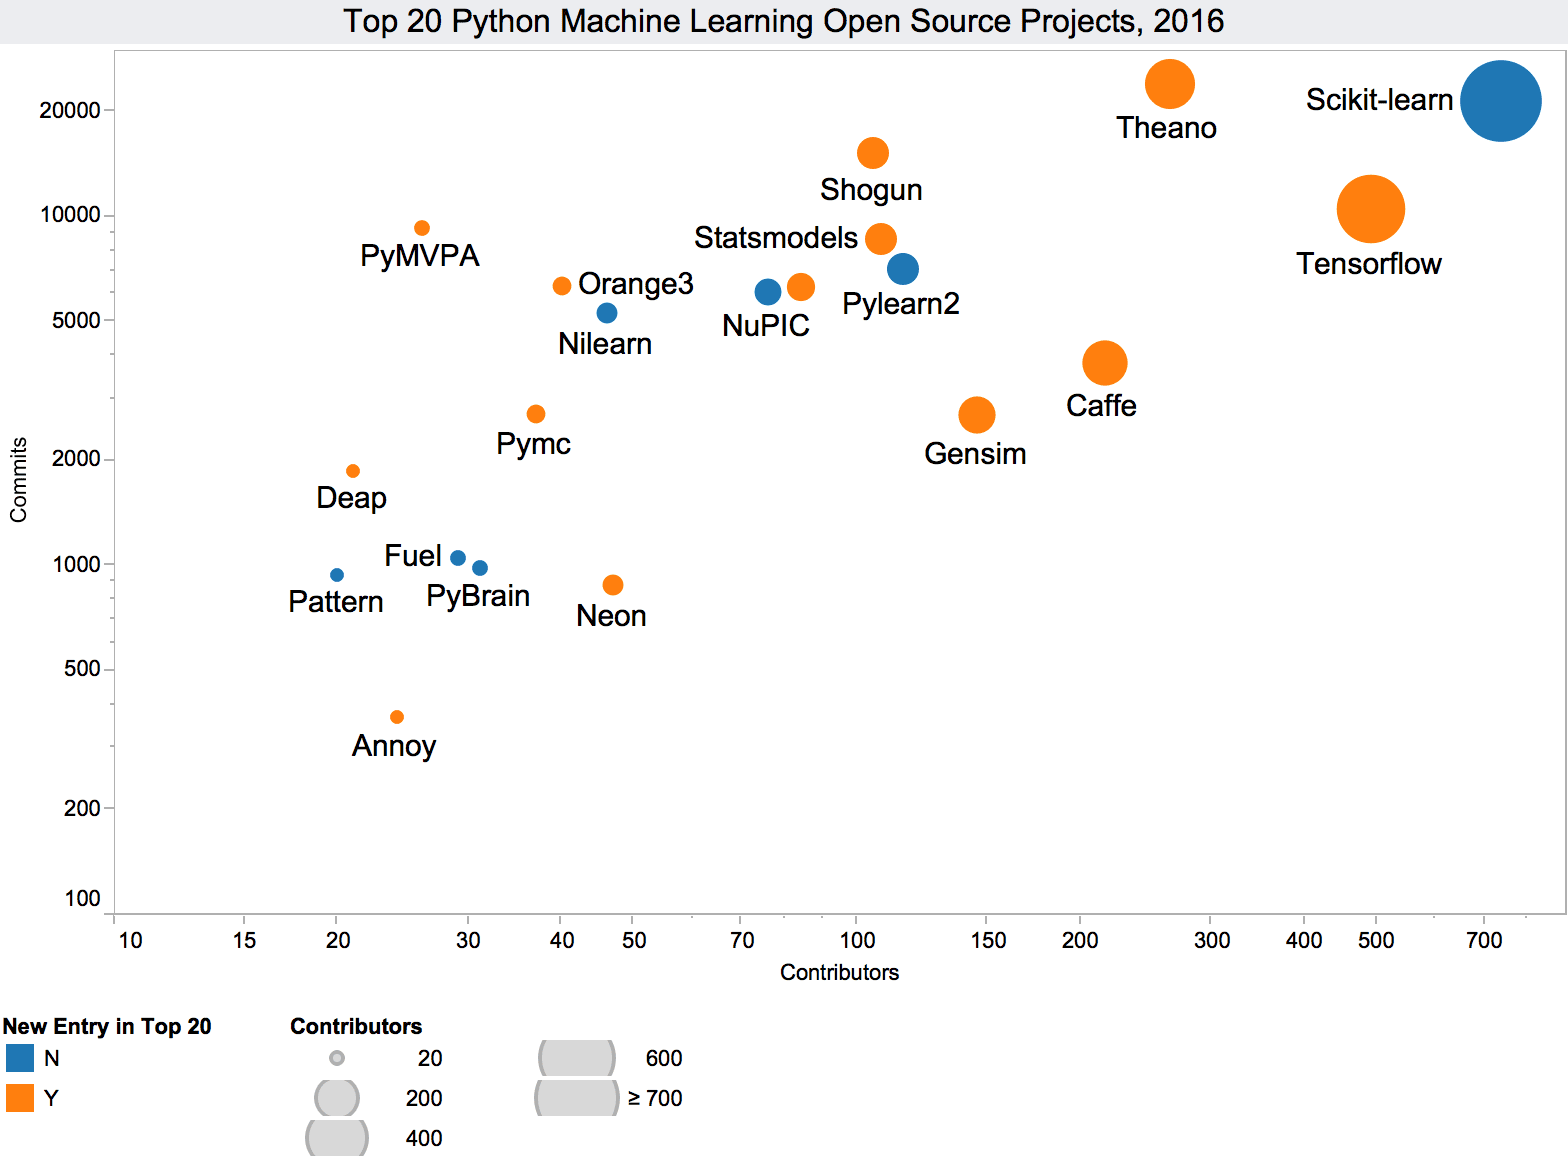 Top tweets, Nov 16-22: Top 20 #Python #MachineLearning #OpenSource Projects; Shortcomings of #DeepLearning